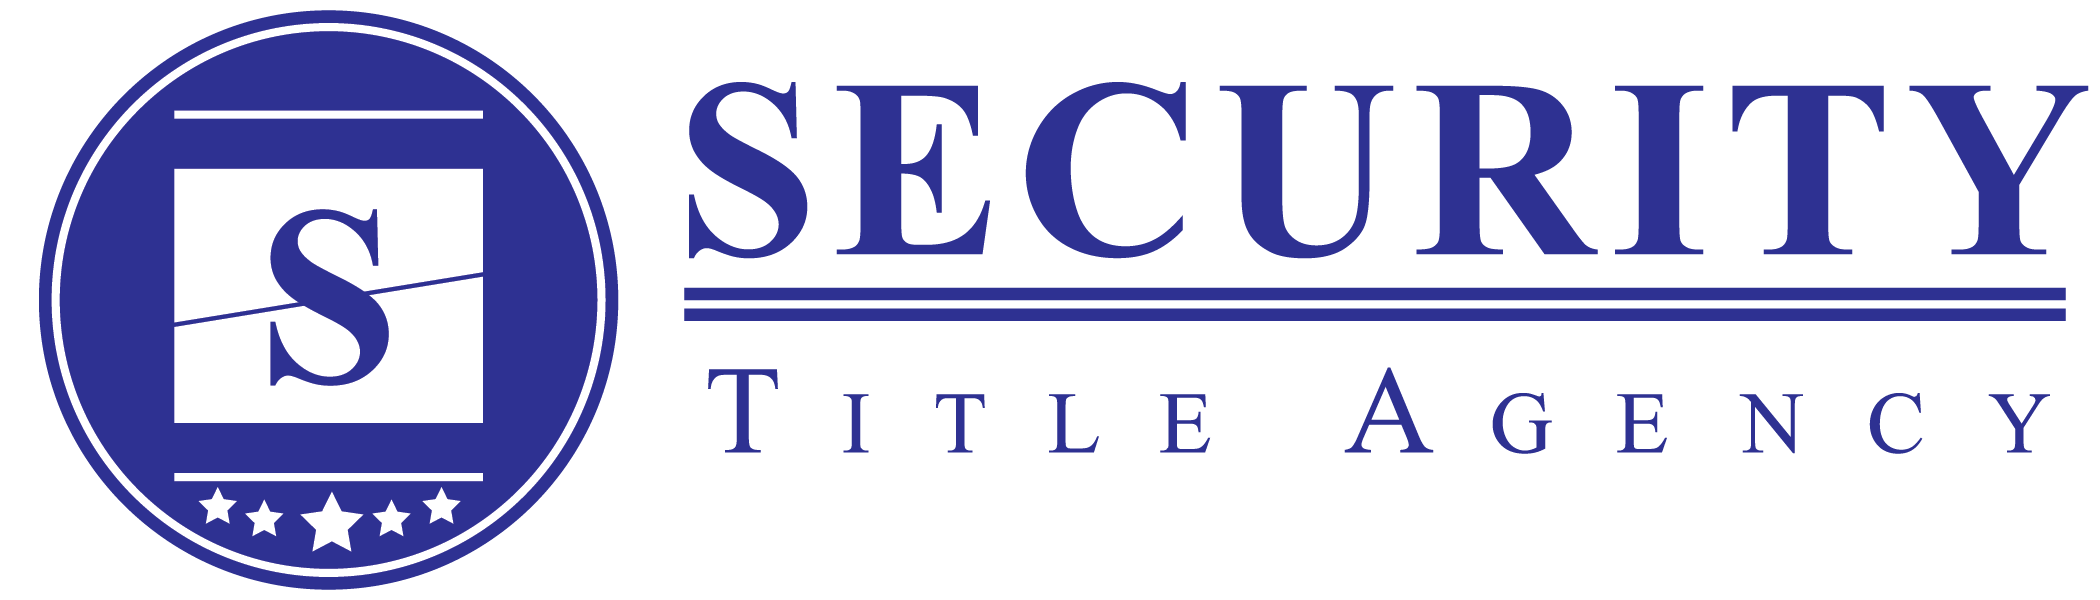 https://securitytitle.com